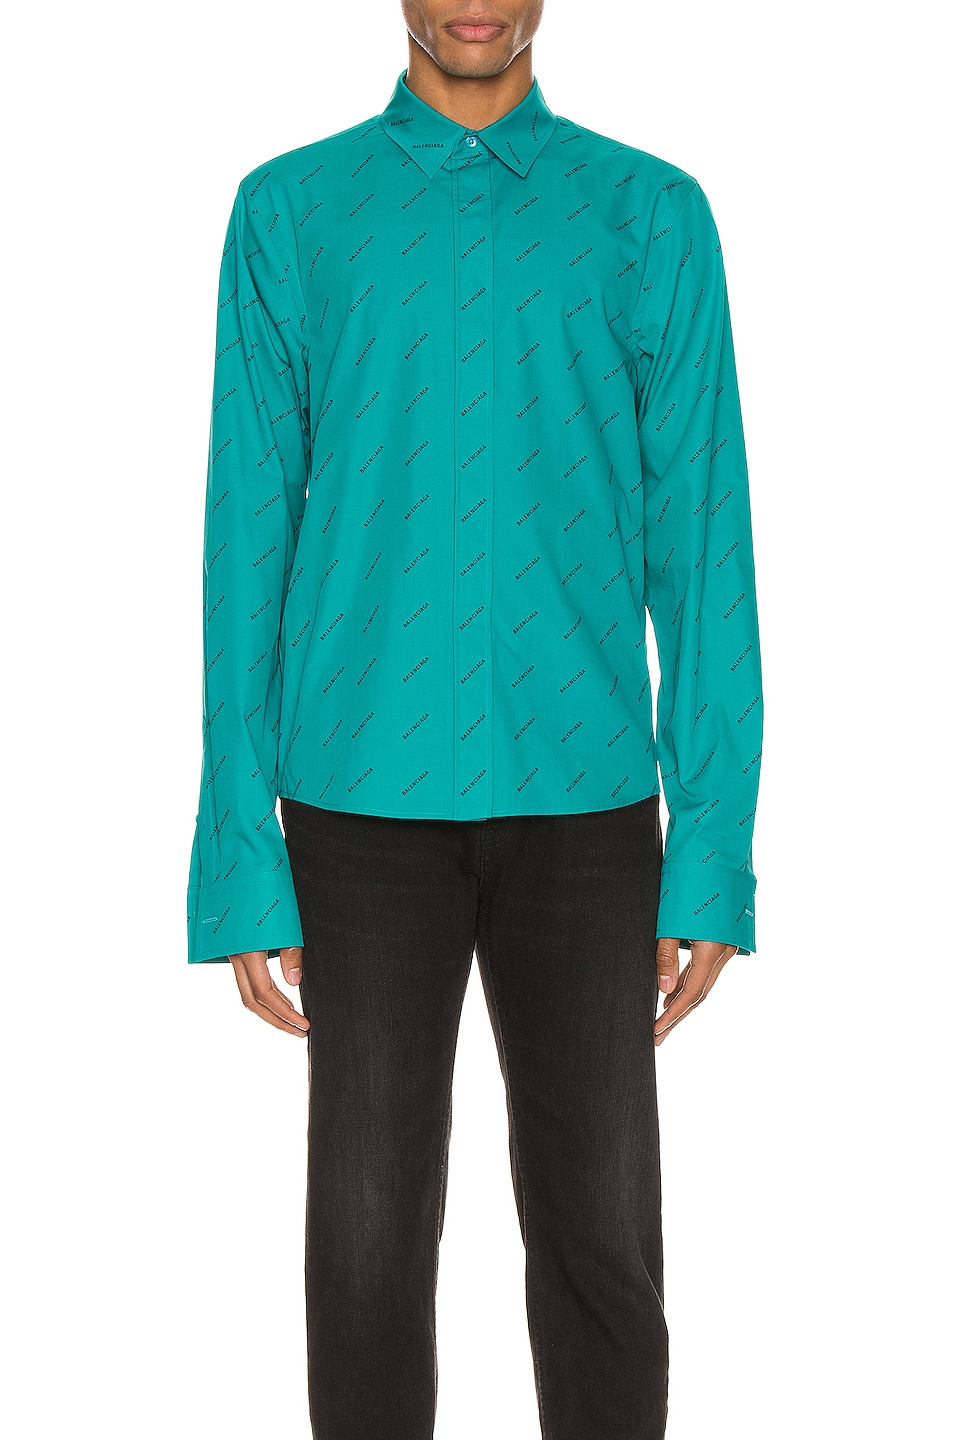 Image 1 of Balenciaga Fitted Shirt in Turquoise & Black